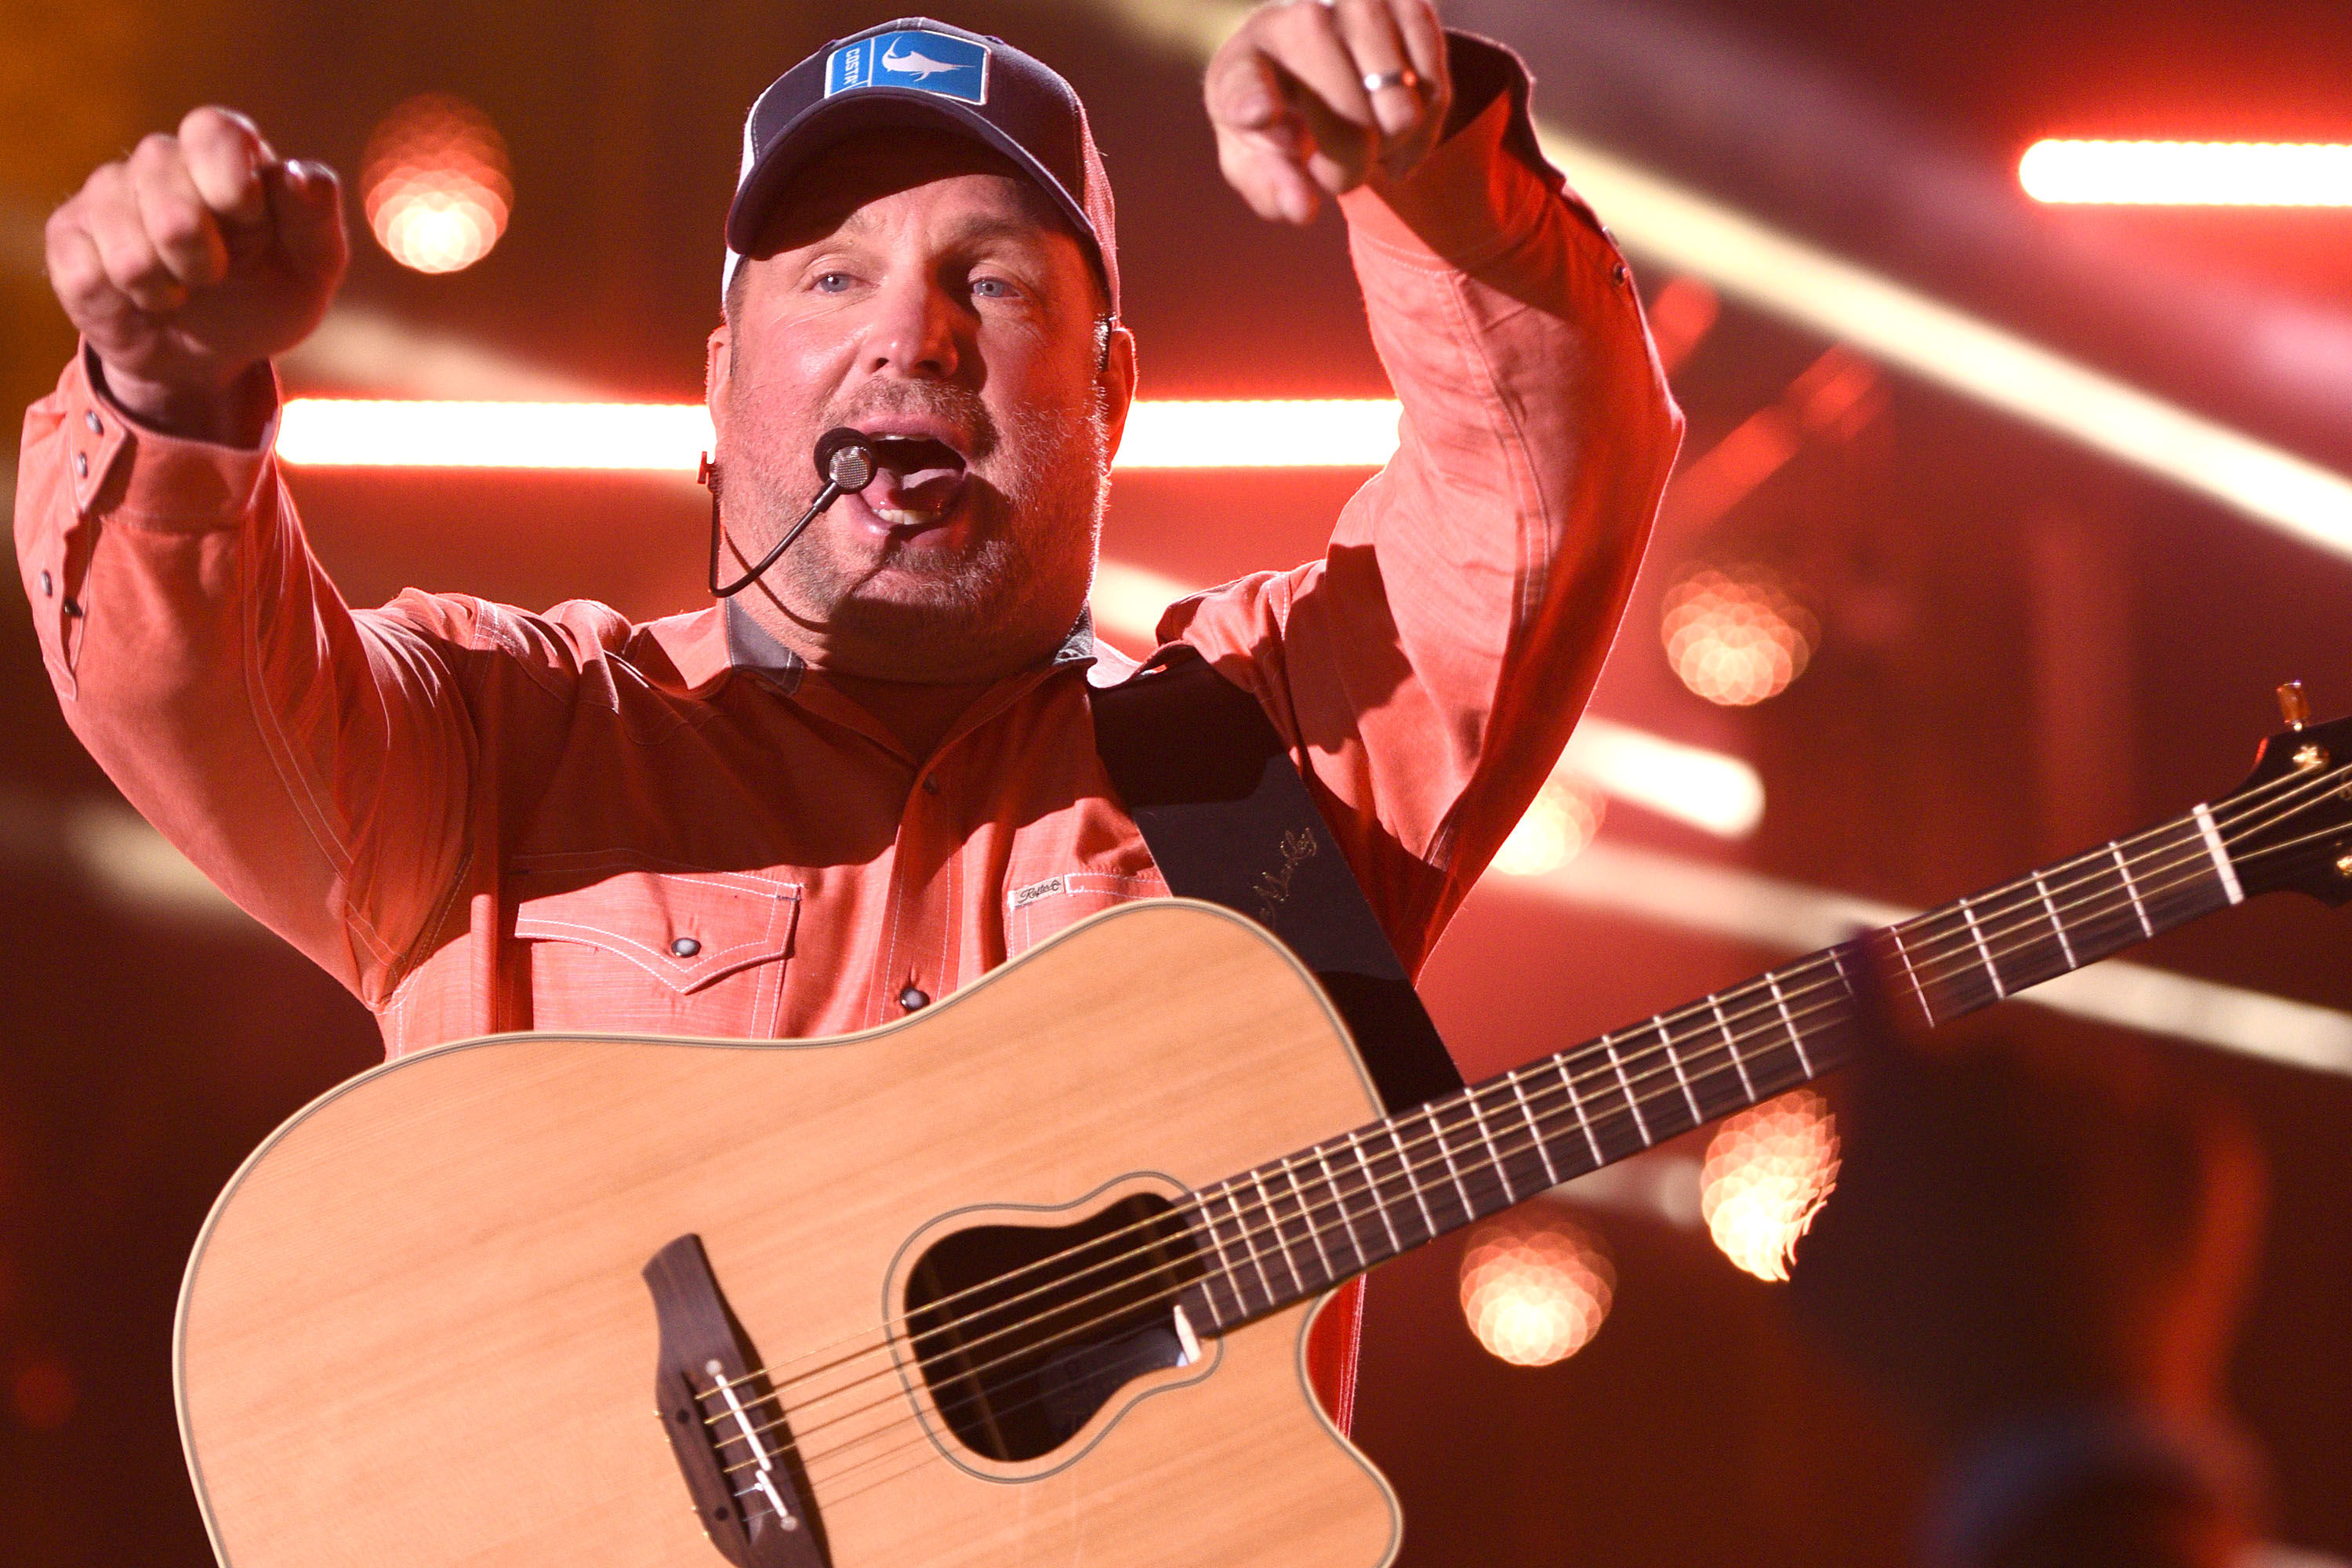 Garth Brooks Serenaded an 89-Year-Old Woman This Weekend and We Love it!